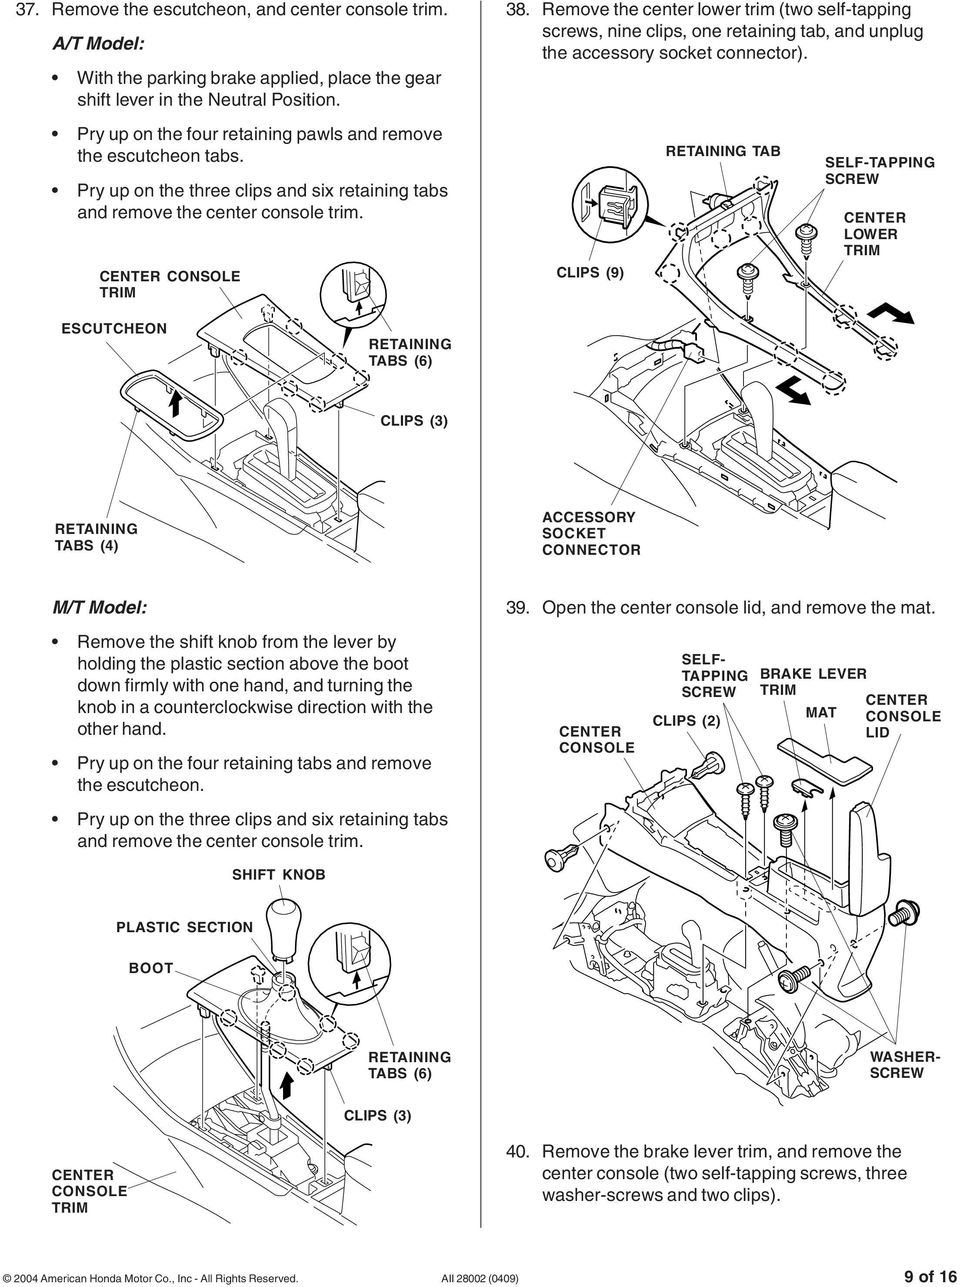 Installation Instructions Pdf Tow Harness Self Center Remove The Lower Trim Two Tapping Screws Nine Clips One